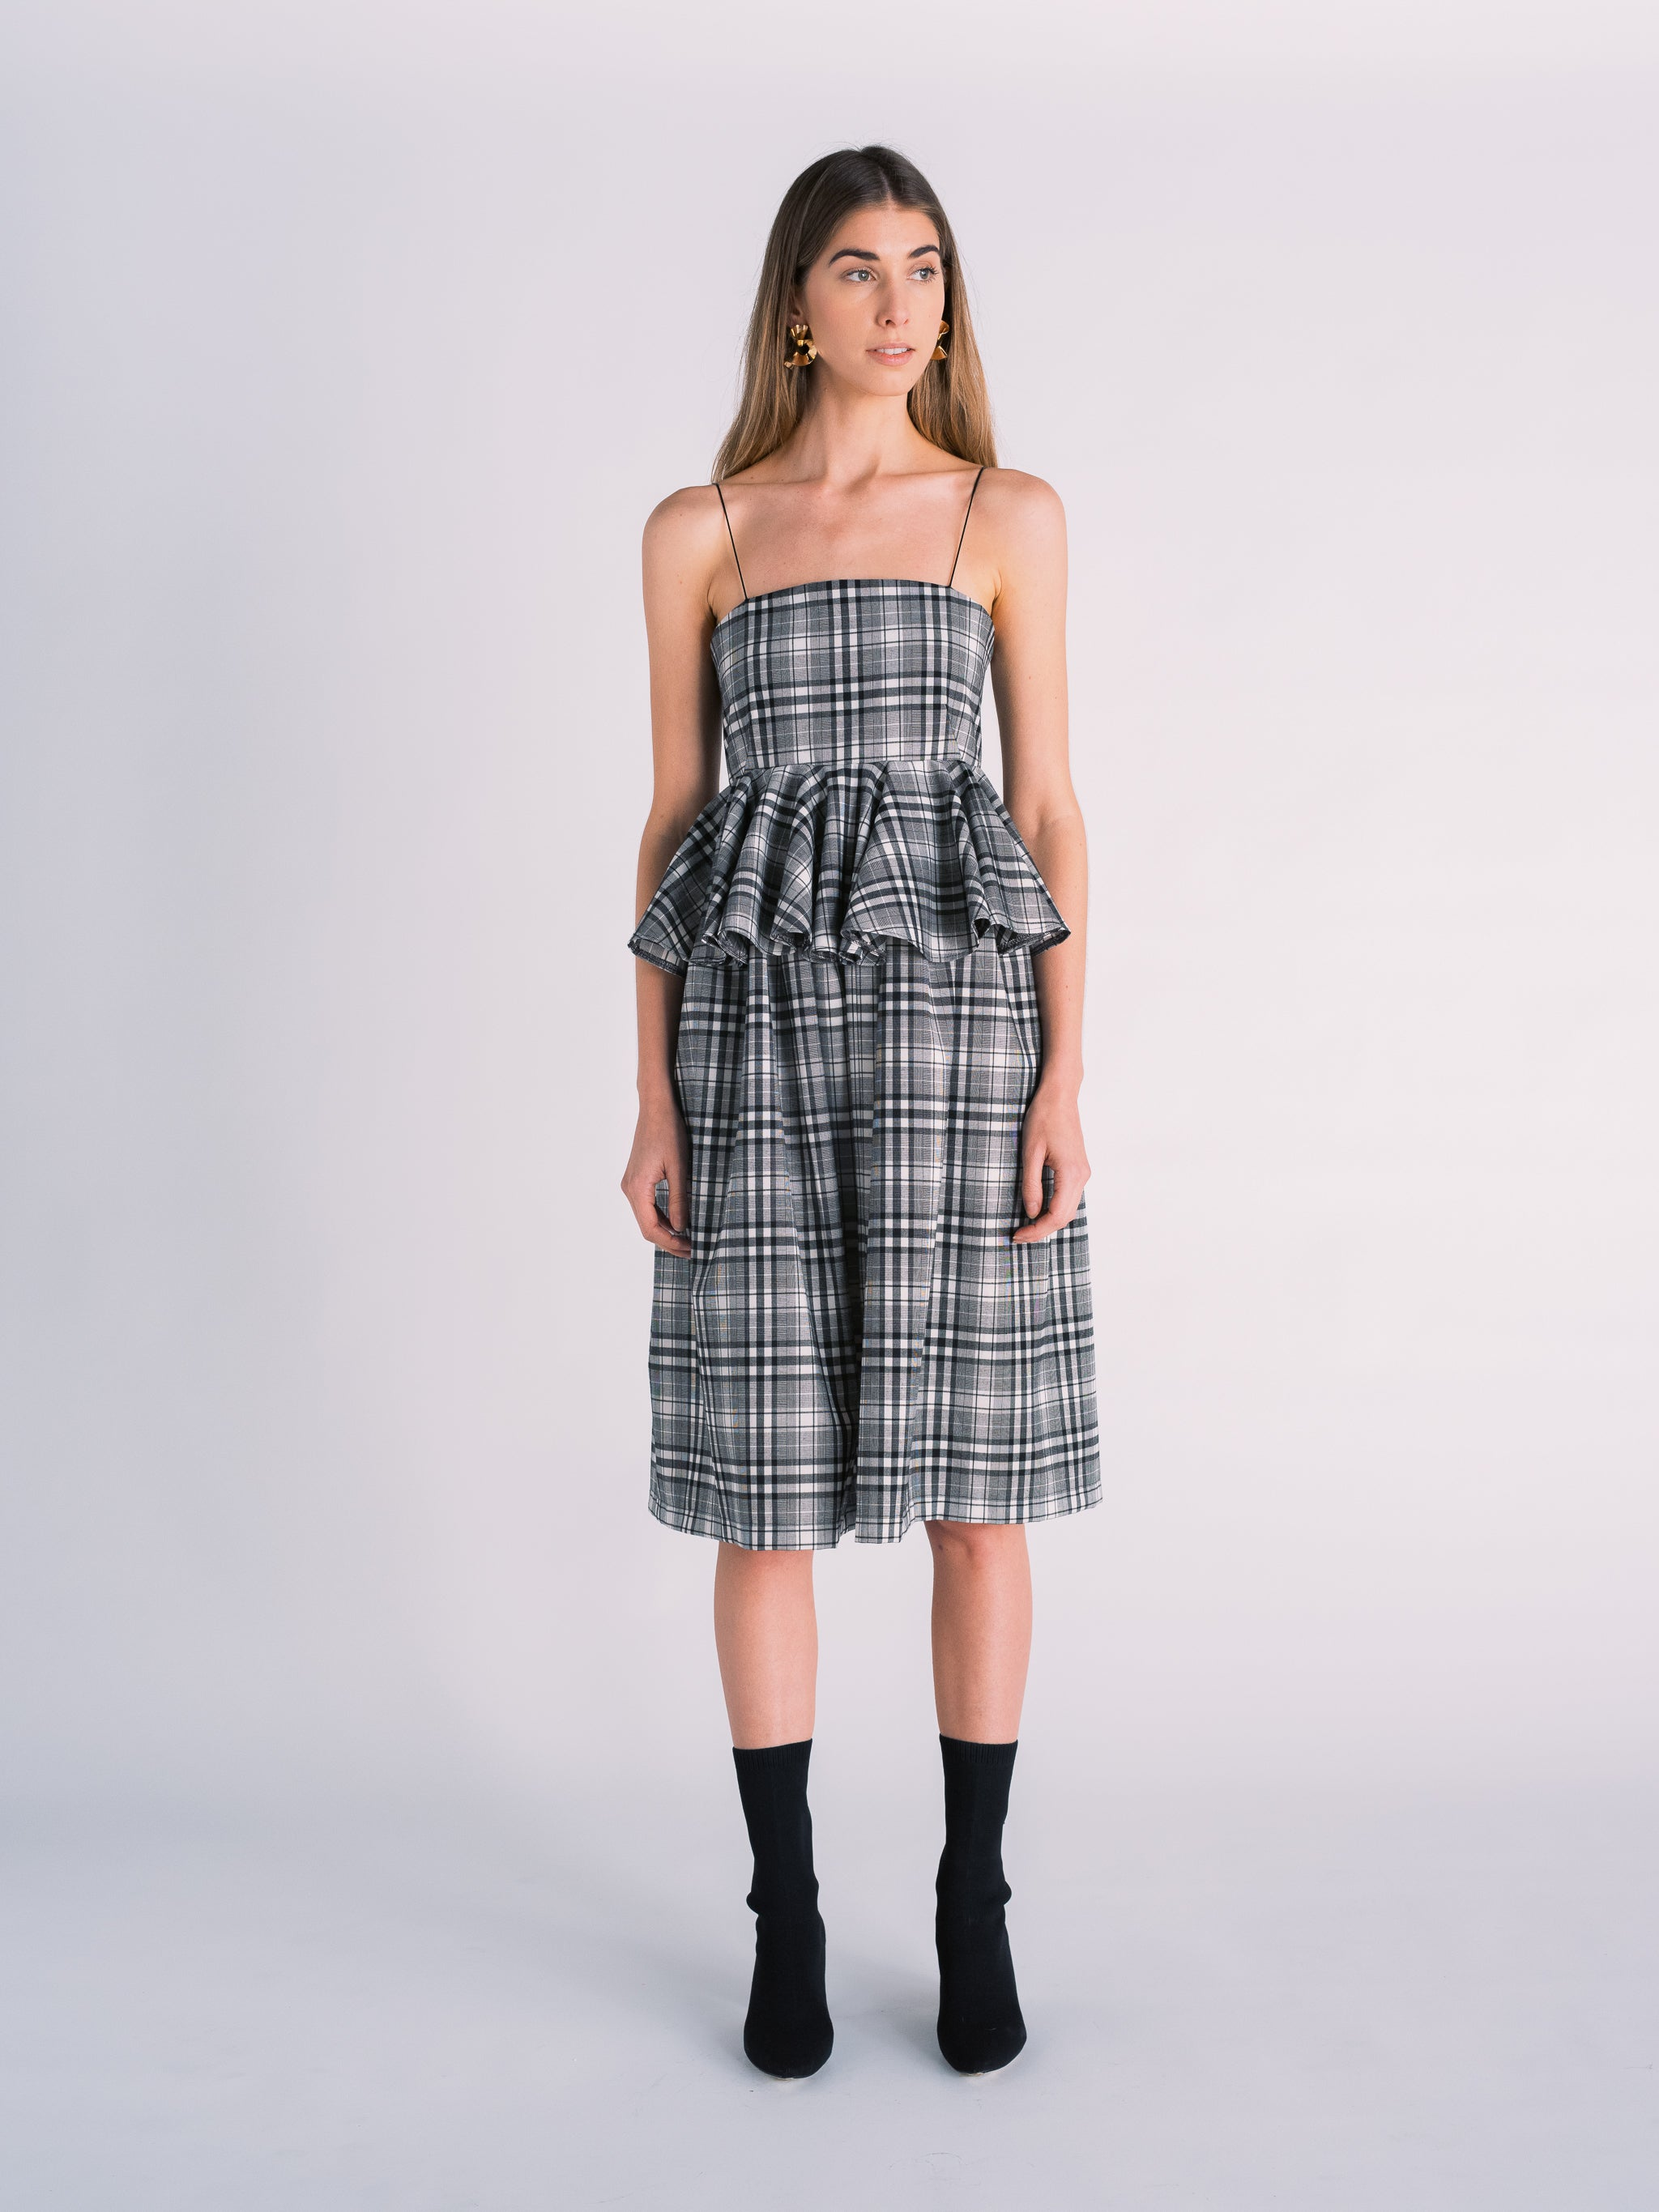 Plaid Midi Dress with Peplum in Black and White Madras Print